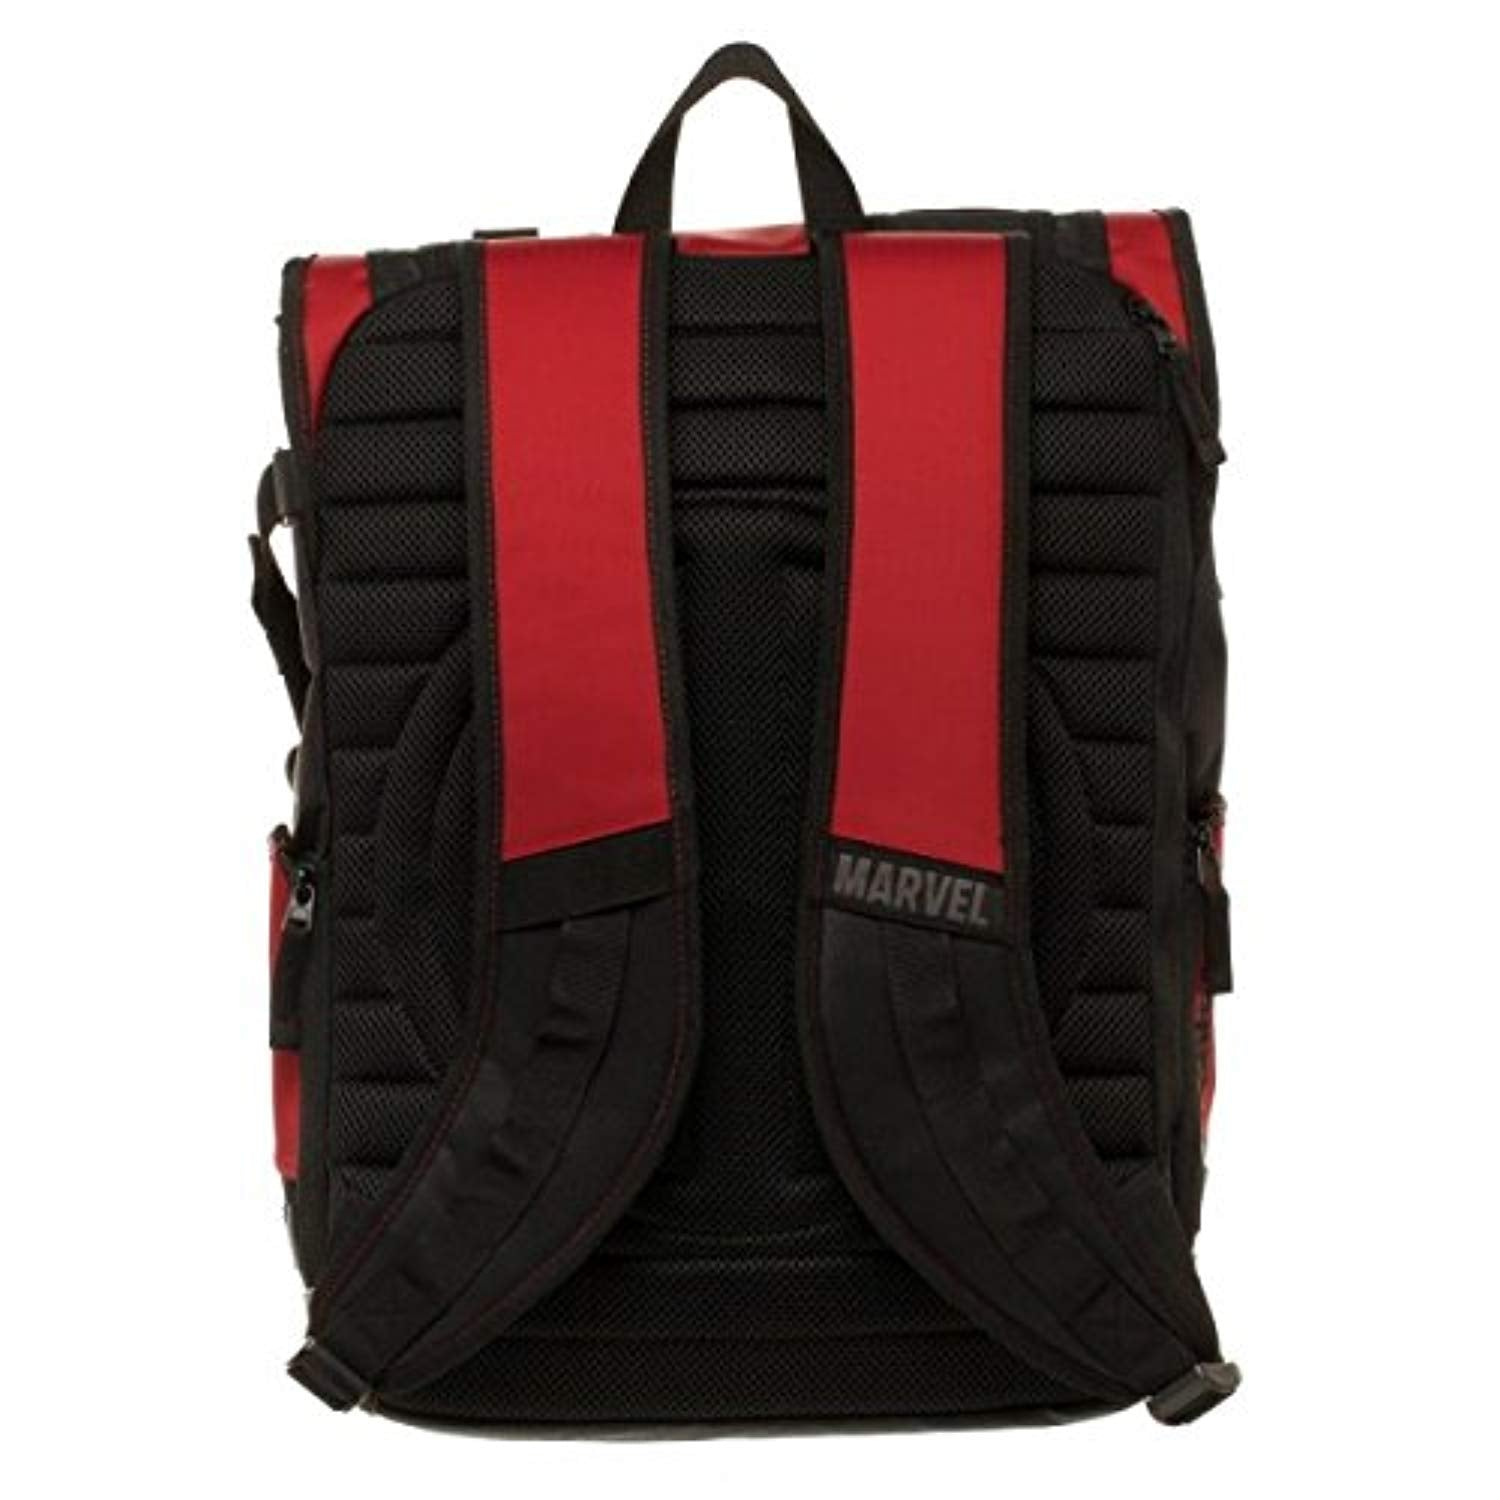 a66794b202 Bioworld Marvel Deadpool Tactical Roll Top Backpack Bioworld Marvel  Deadpool Tactical Roll Top Backpack